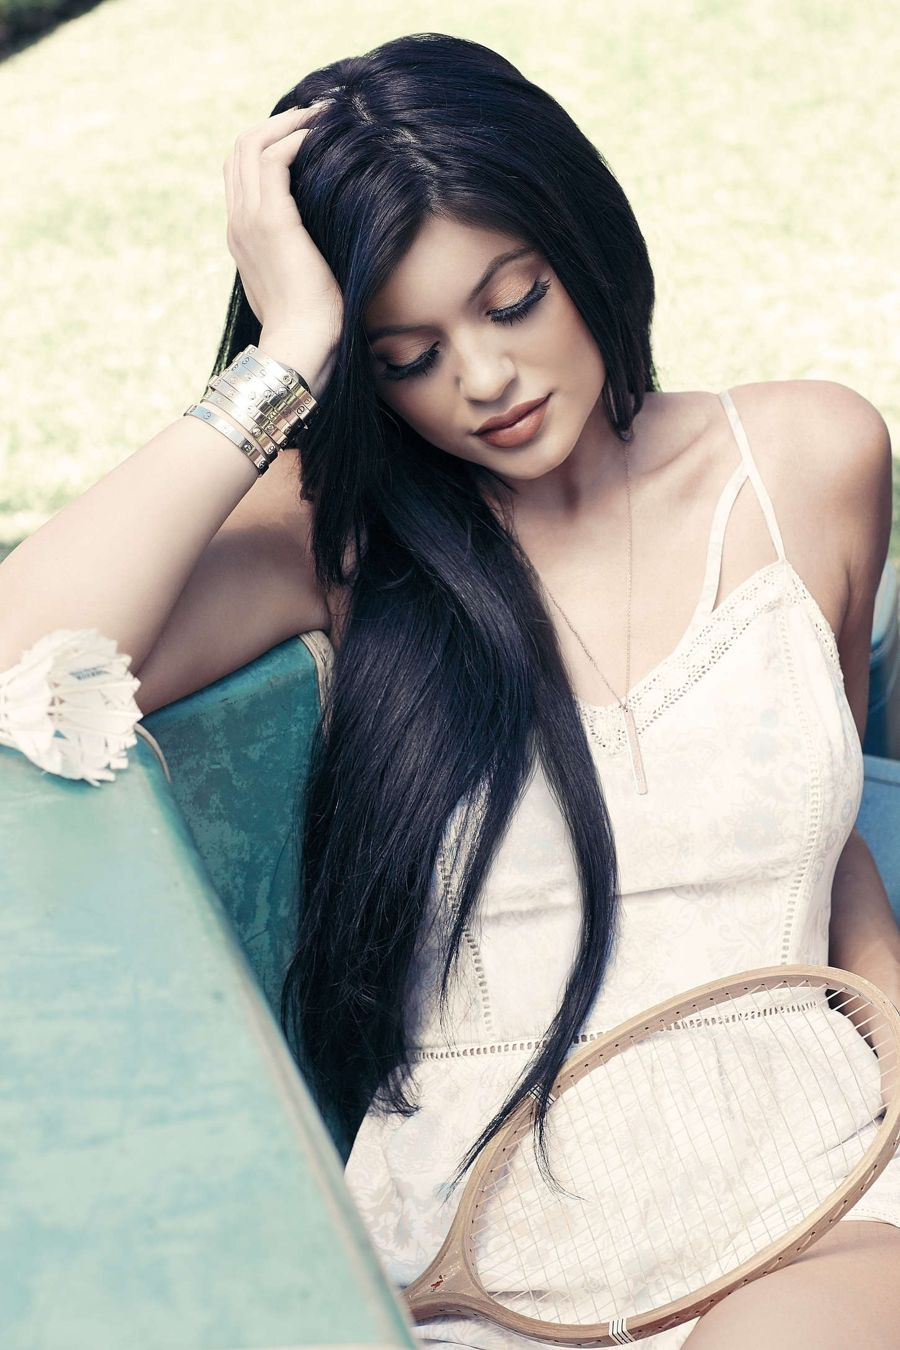 Kendall Jenner and Kylie Jenner - Flirty in Fit Figures